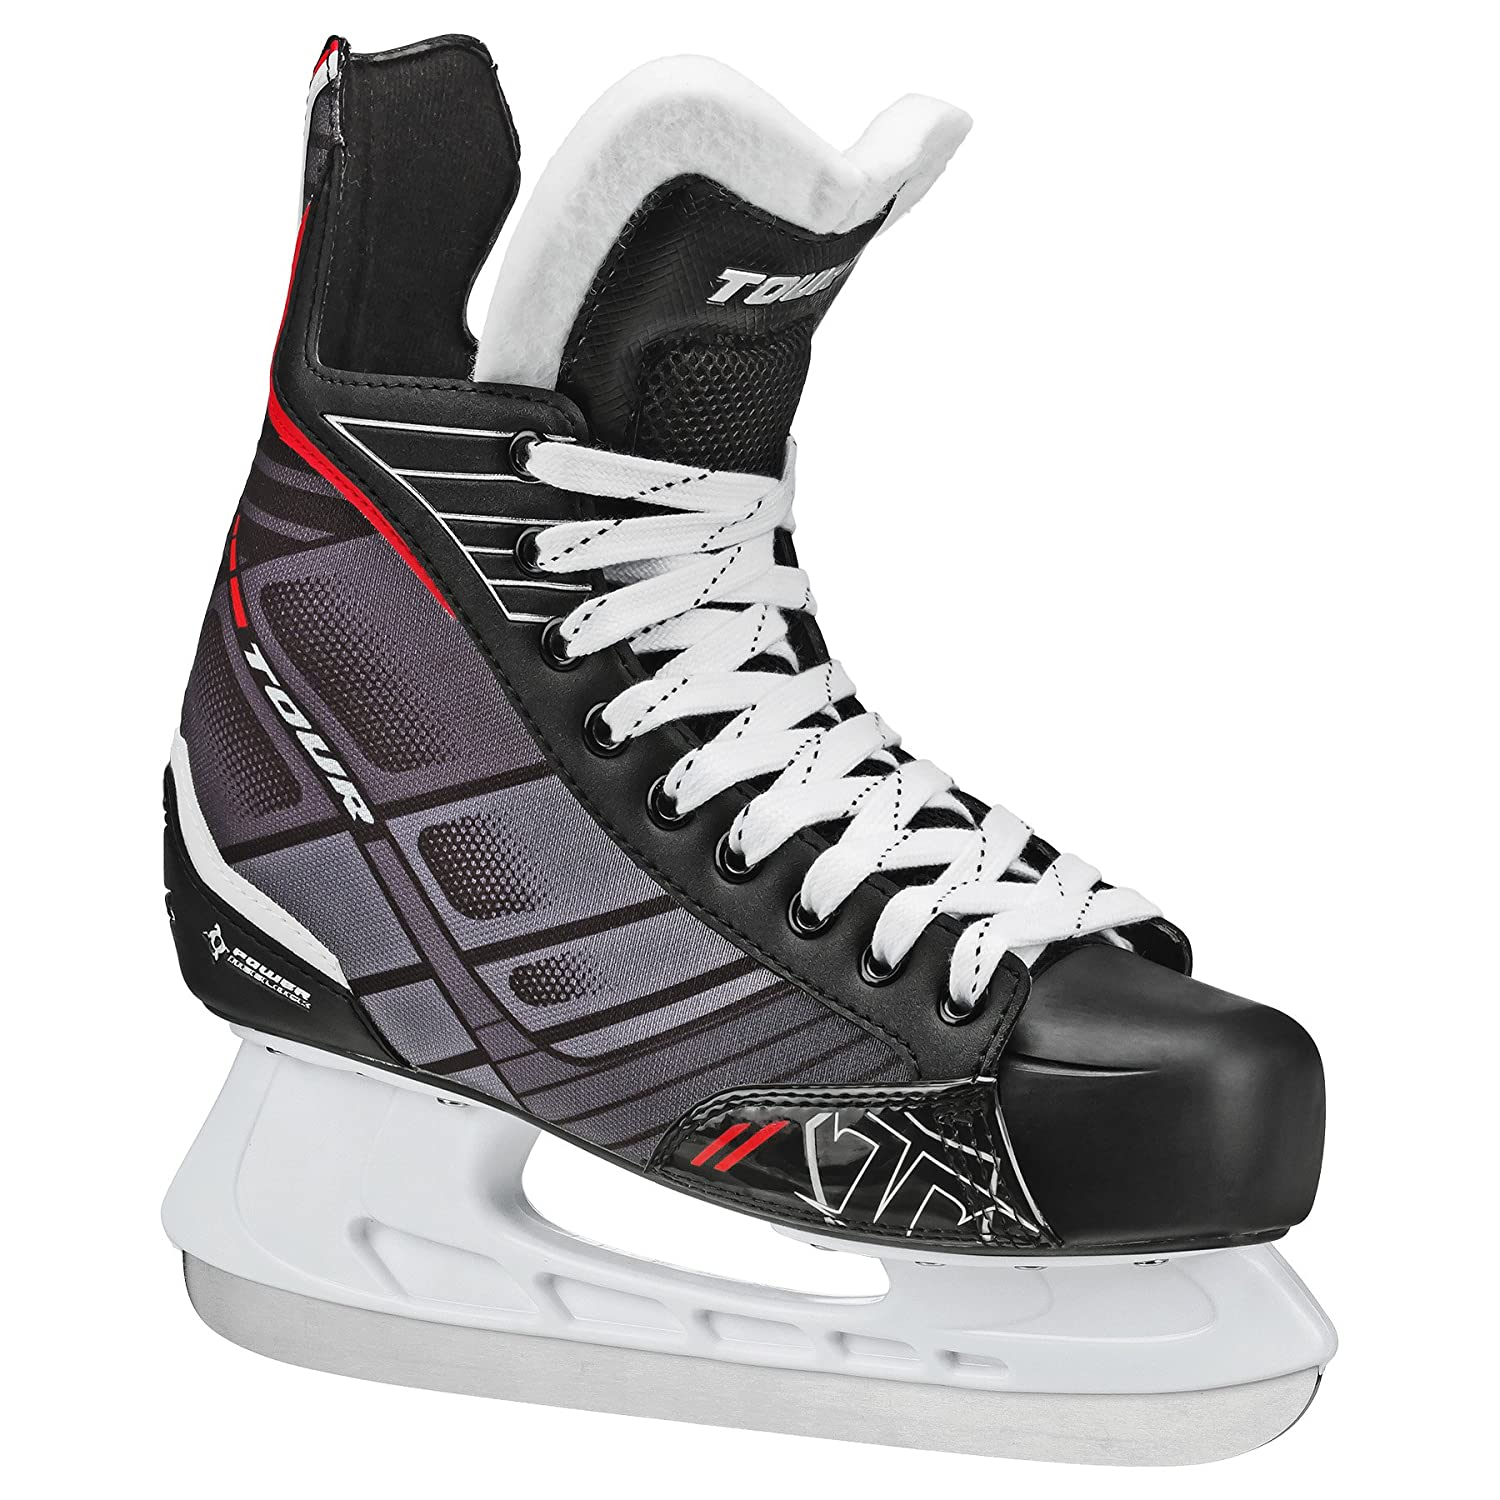 Amazon Tour Hockey Skates